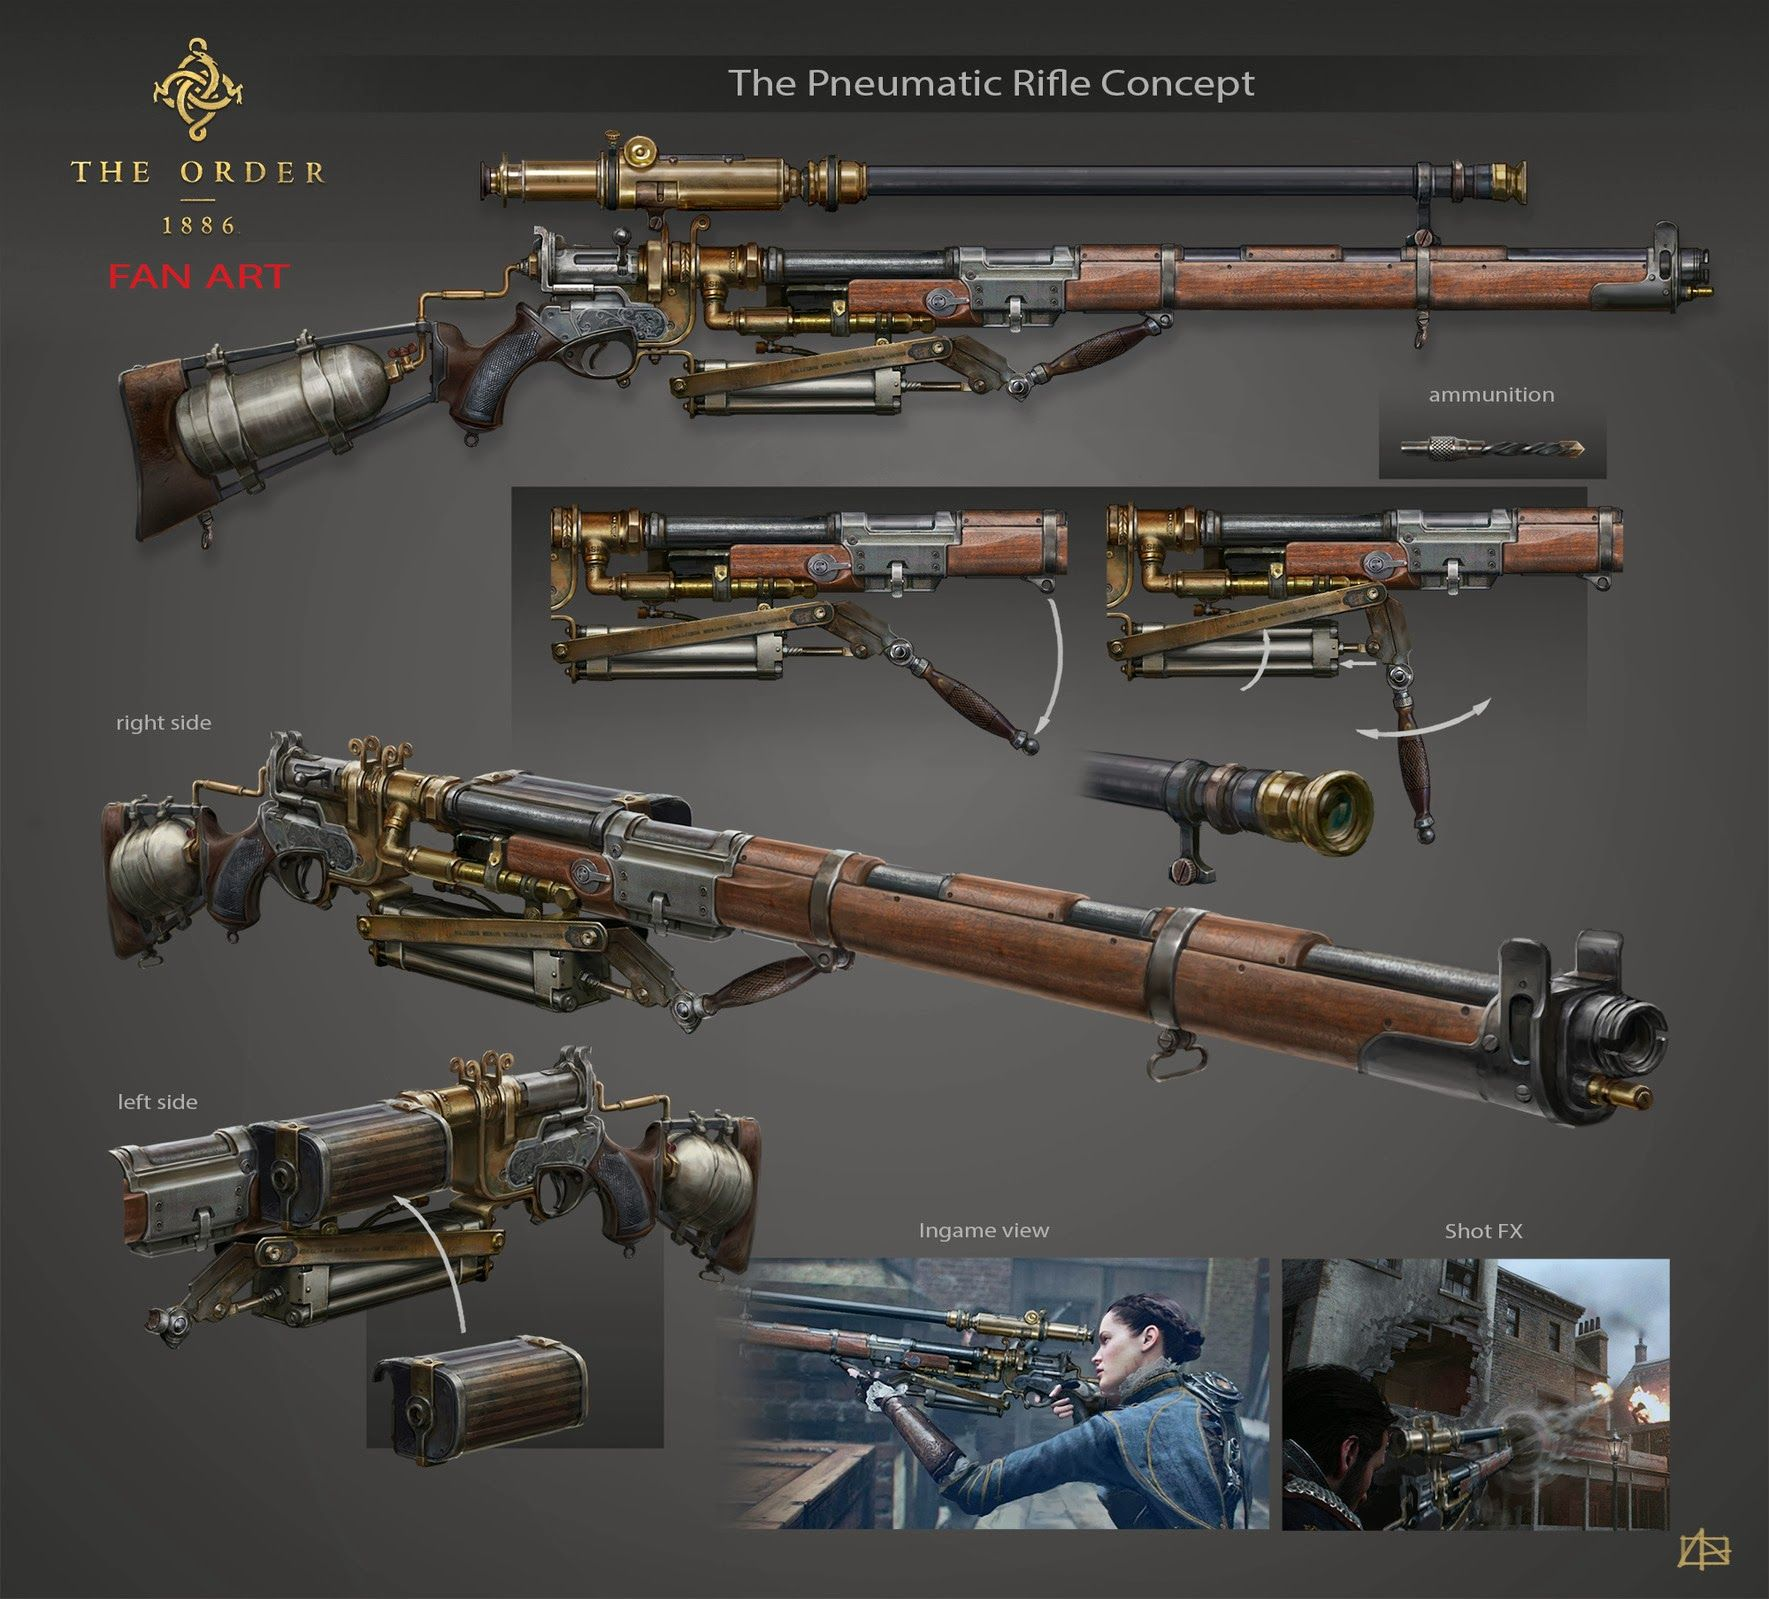 Pin By Sam Boix On Armor Amp Gear In 2019 Steampunk Concept Weapons Steampunk Weapons